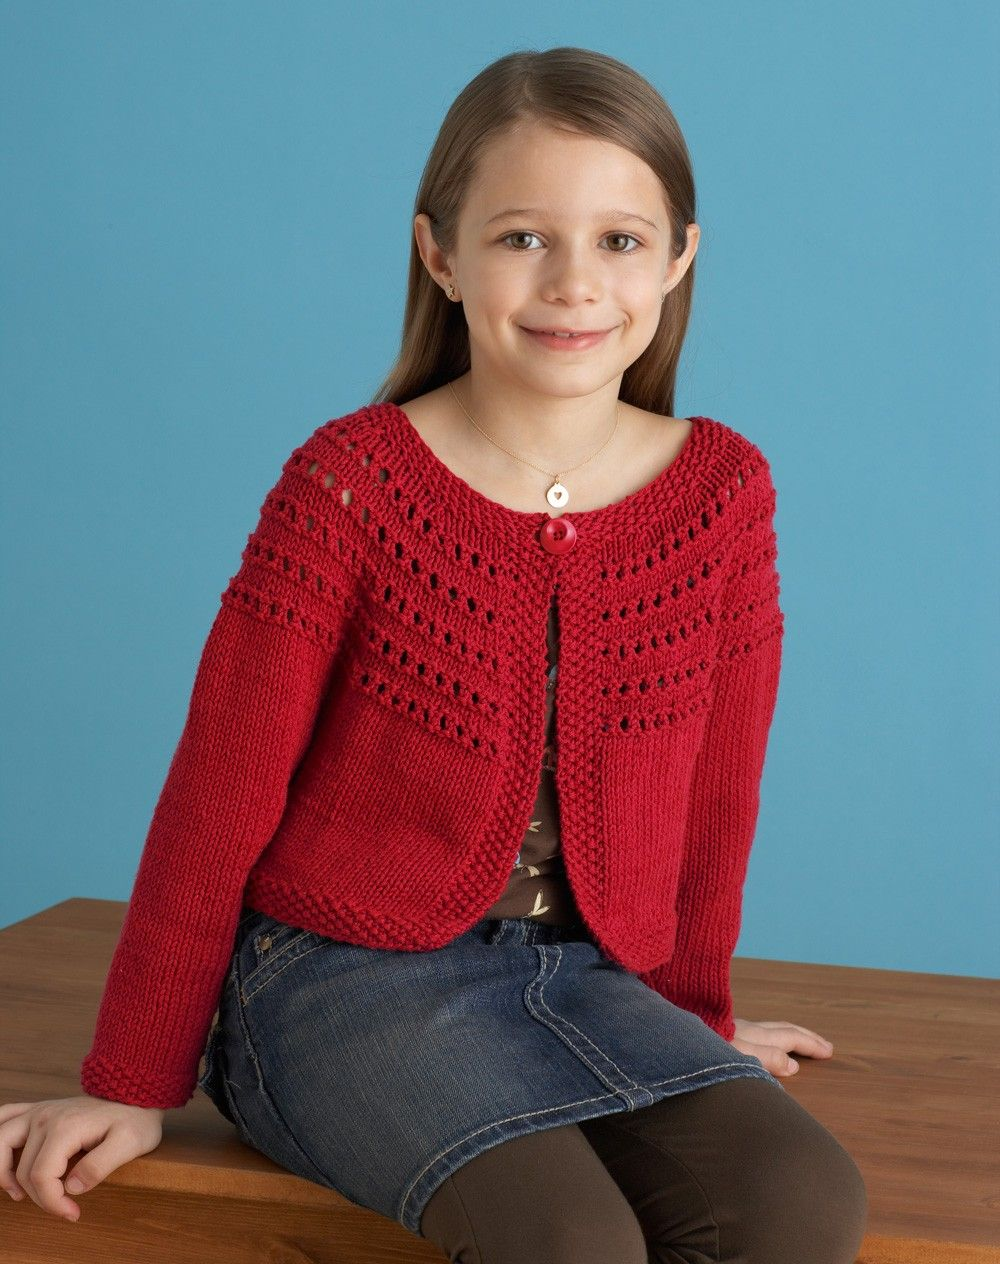 Pattern knit Brand 4 Lion Fresh Color Picked Sleeve Cardigan 3 qwUxYva60